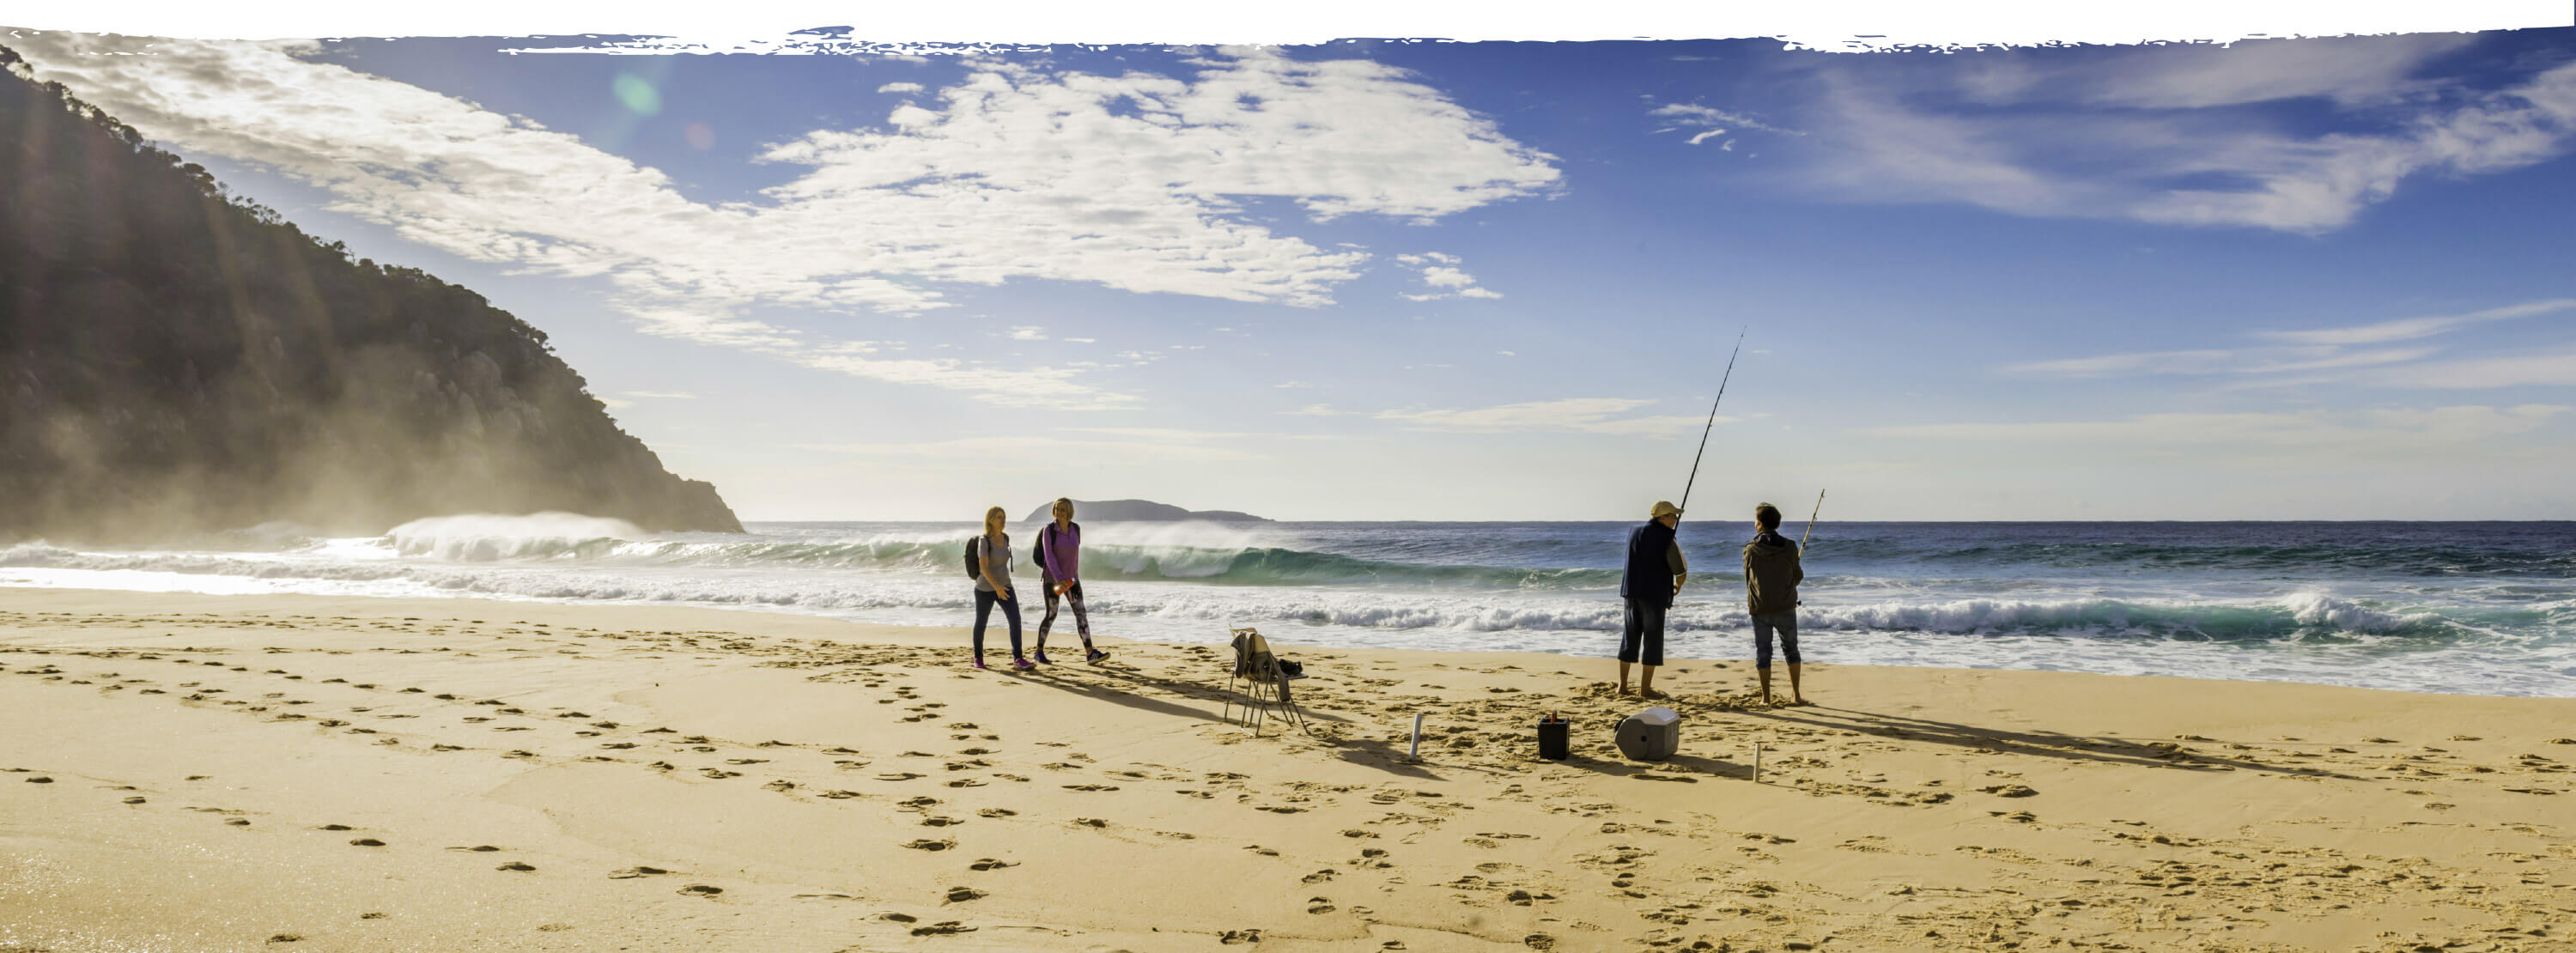 walking and fishing on the beach in Port Stephens